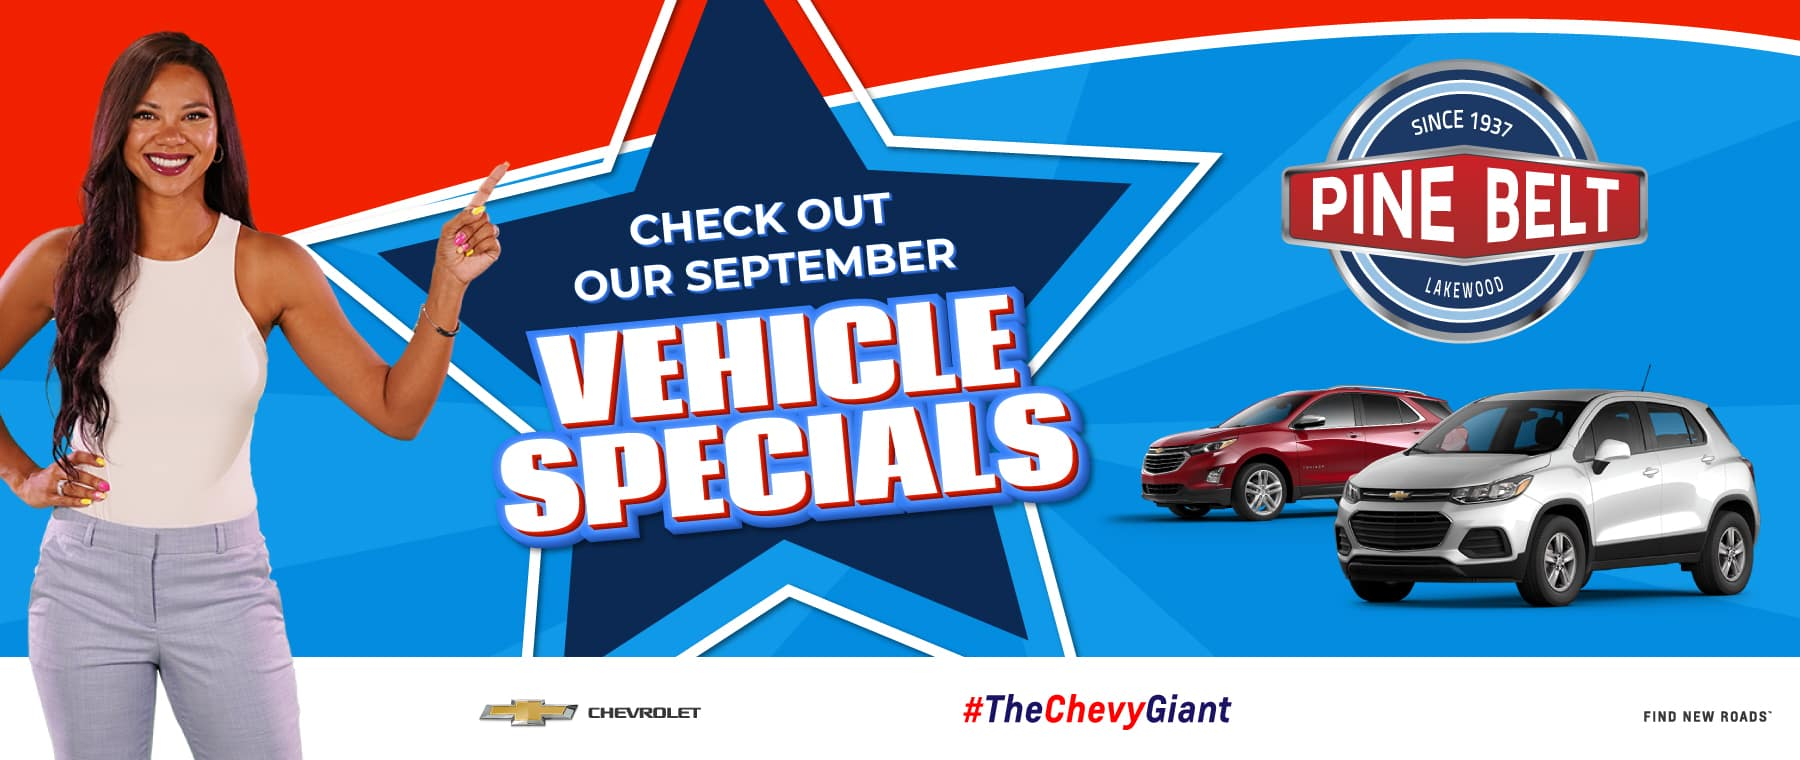 PBE-0000-September-Monthly-Specials_CHEVY